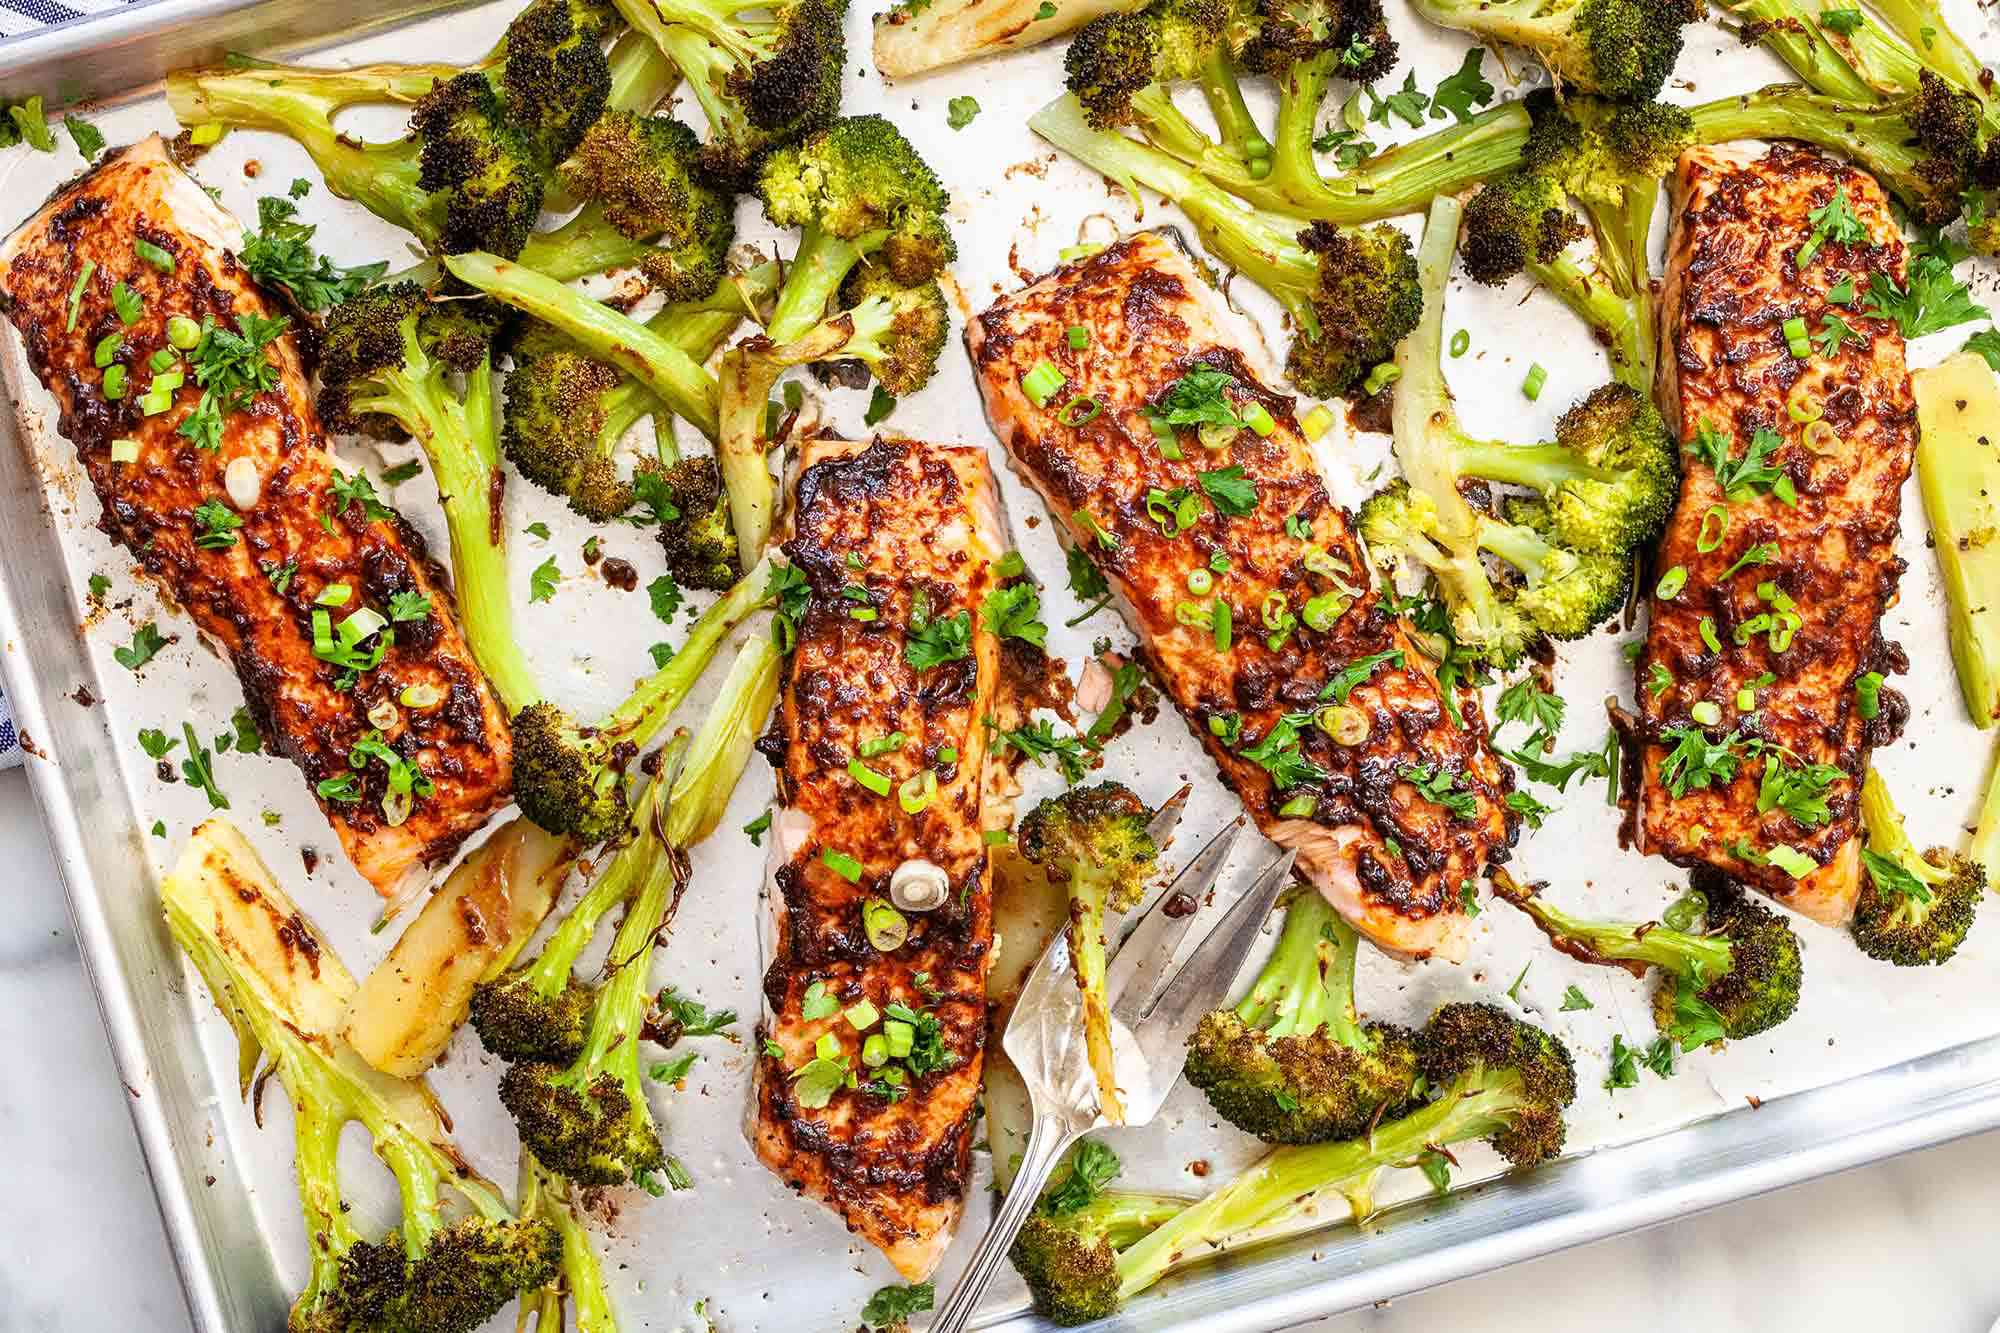 Sheet Pan Salmon with Broccoli - Ring the dinner bell!